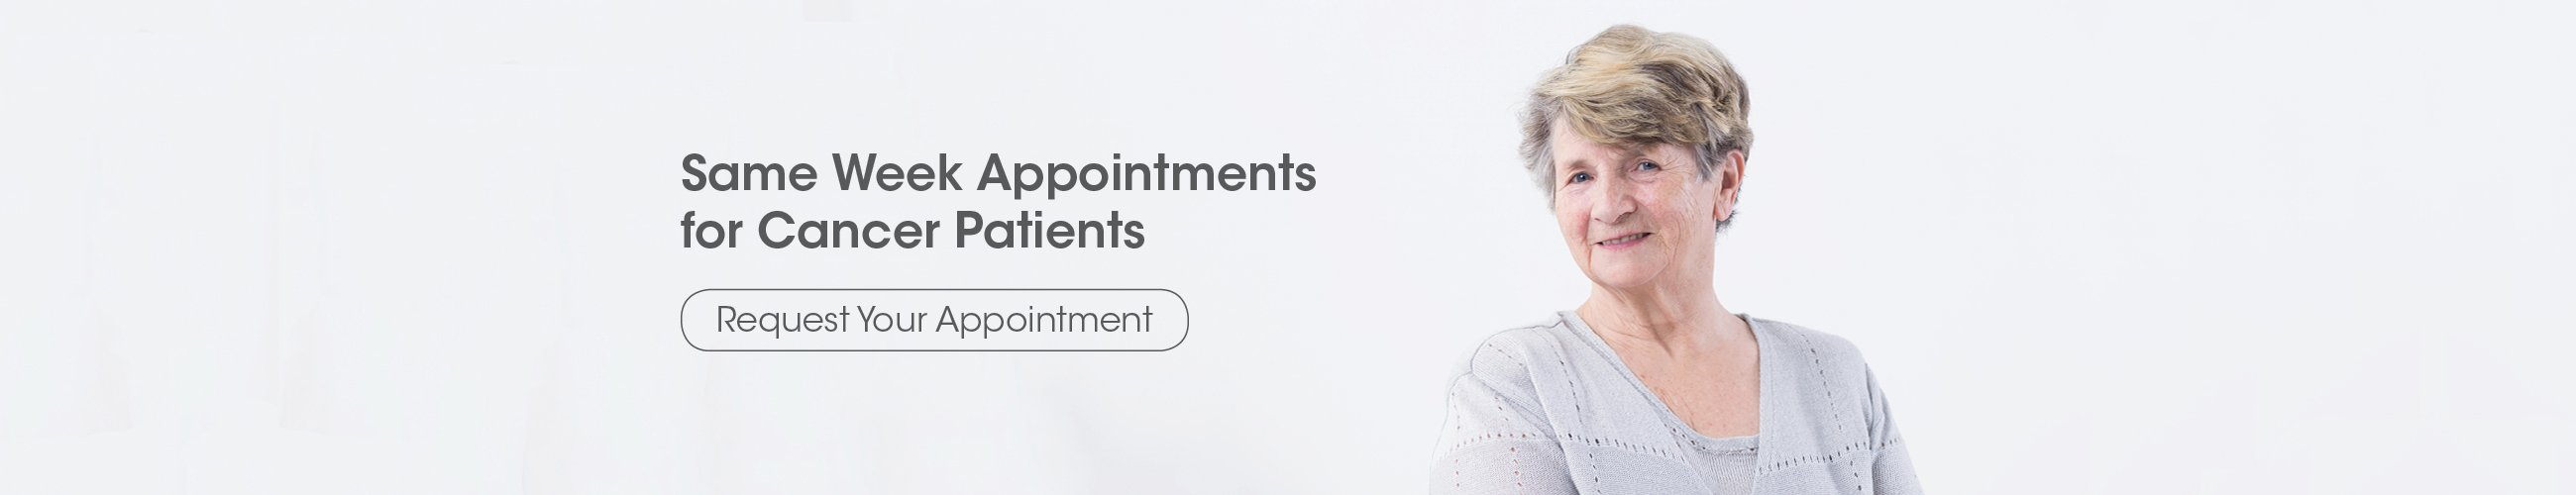 Ivy Same Week Appointments